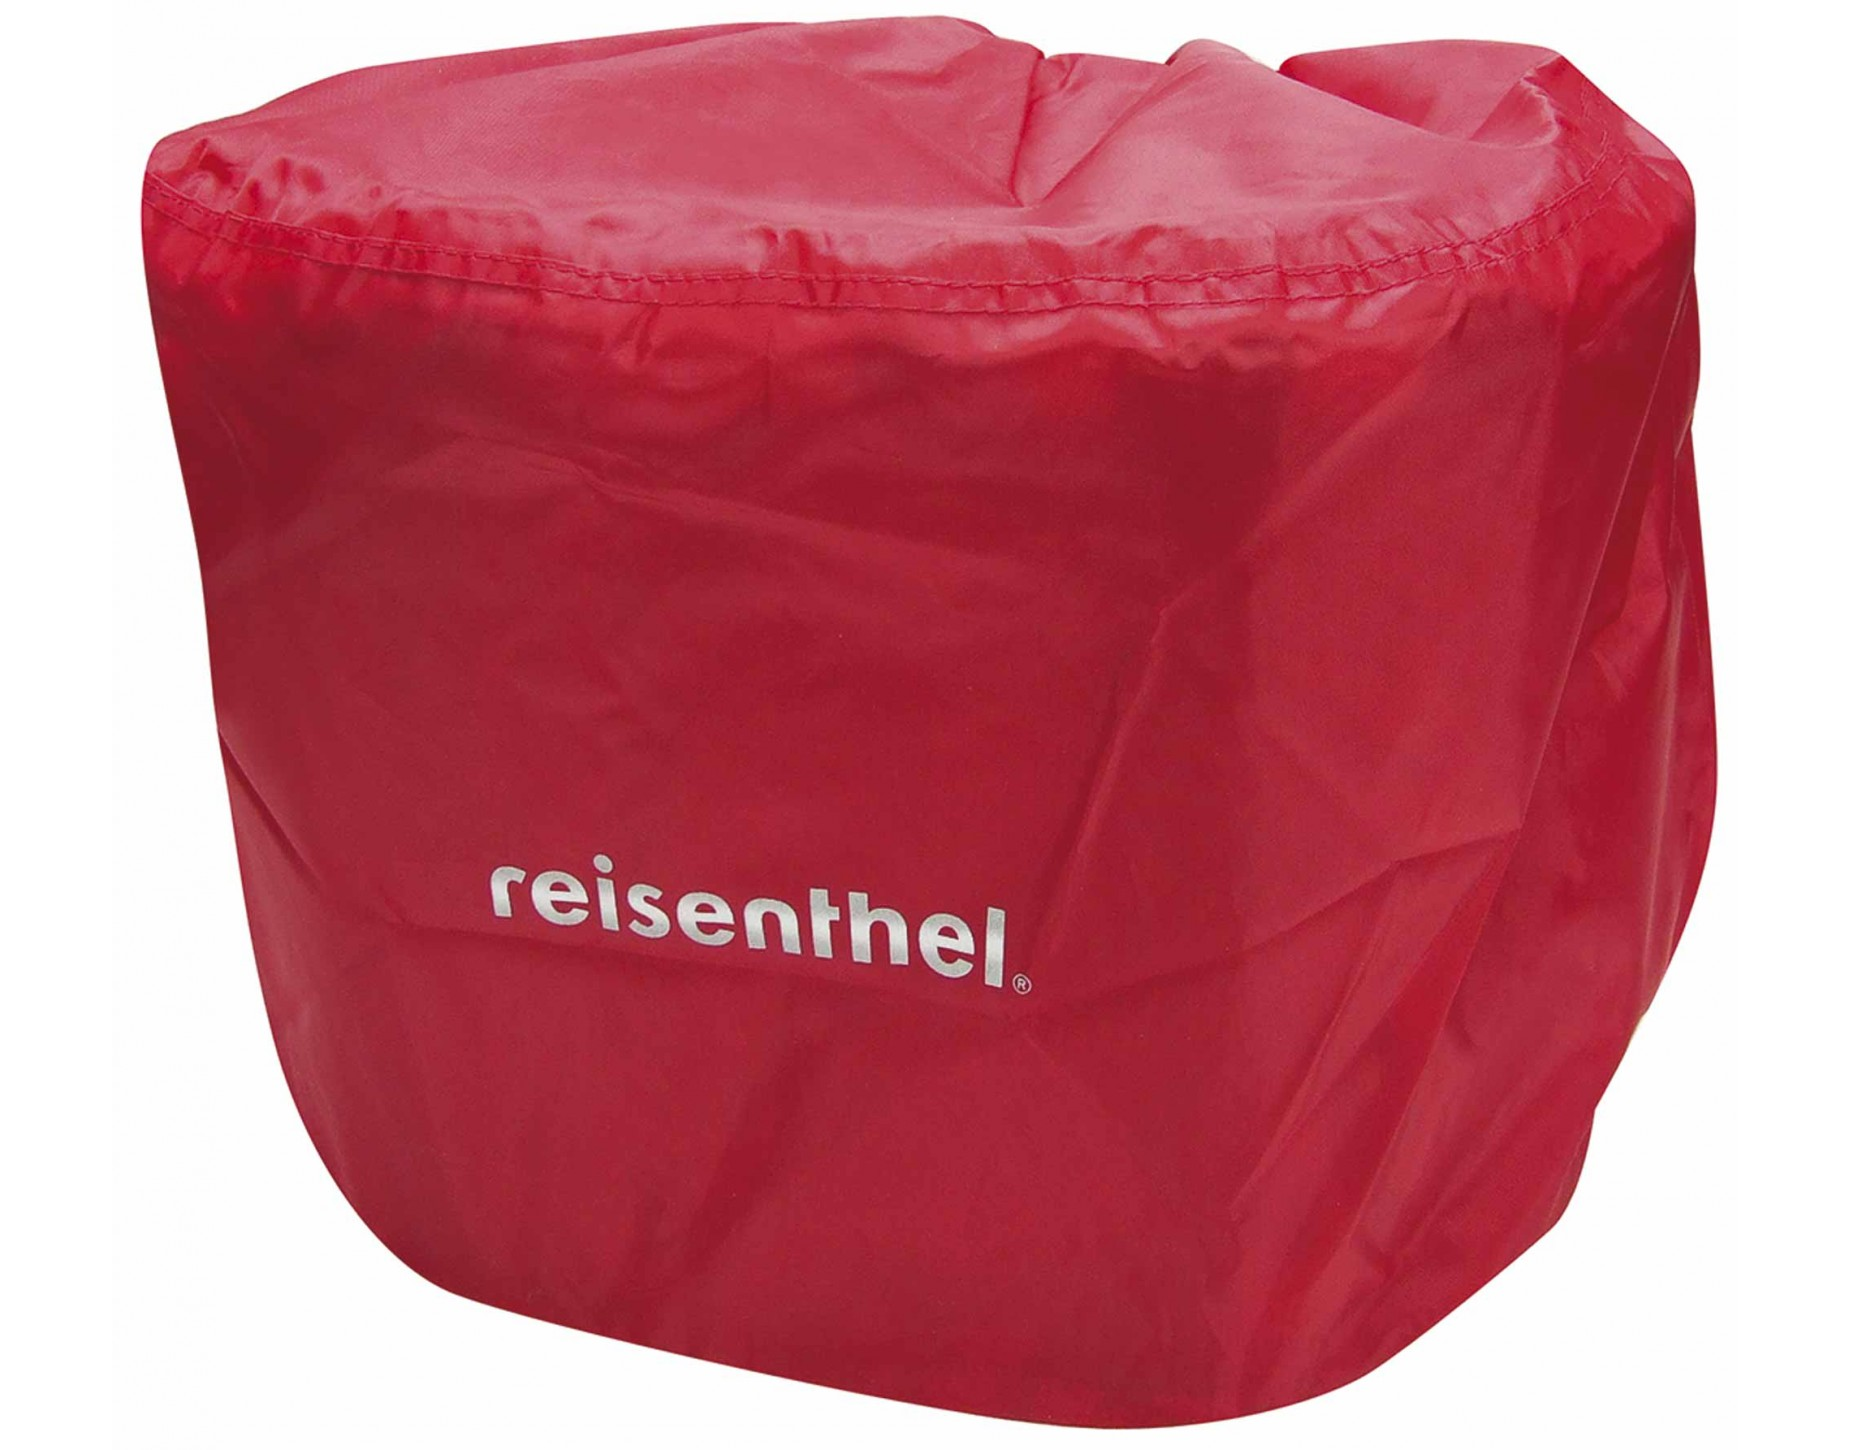 reisenthel raincover for bike baskets everything you need rose bikes. Black Bedroom Furniture Sets. Home Design Ideas